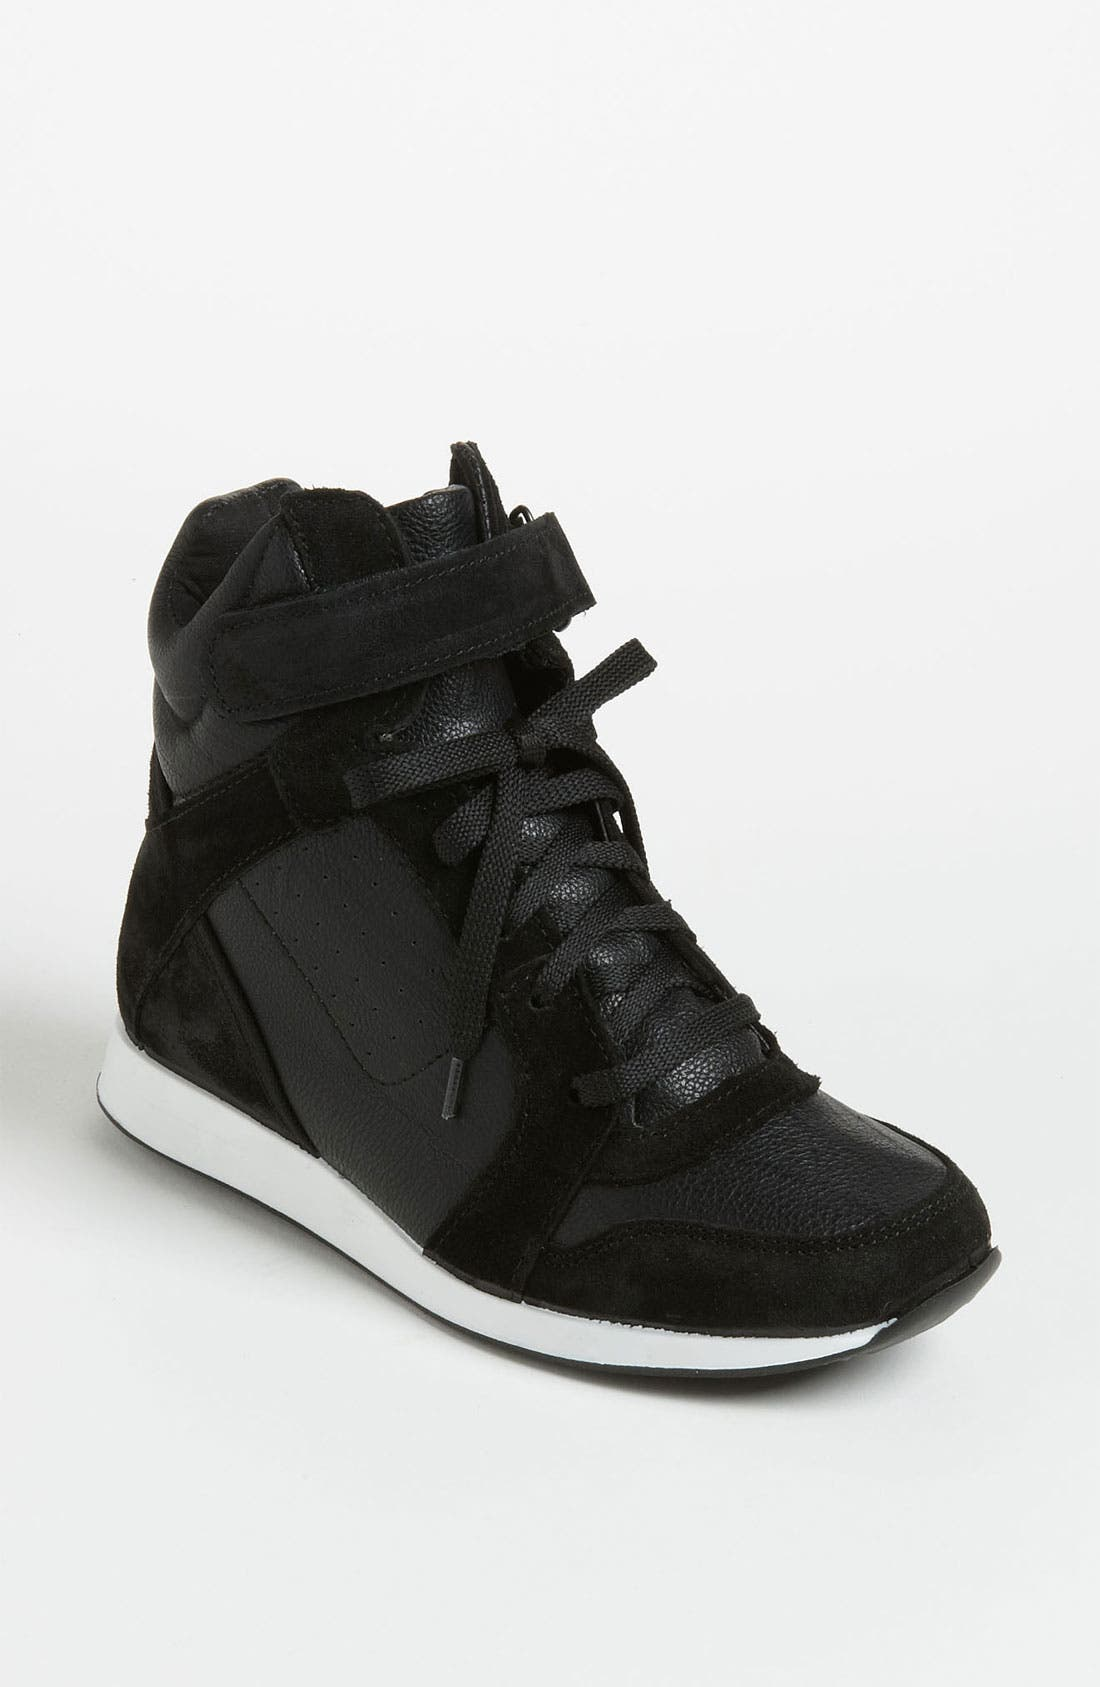 Alternate Image 1 Selected - Topshop 'Android' Wedge Sneaker